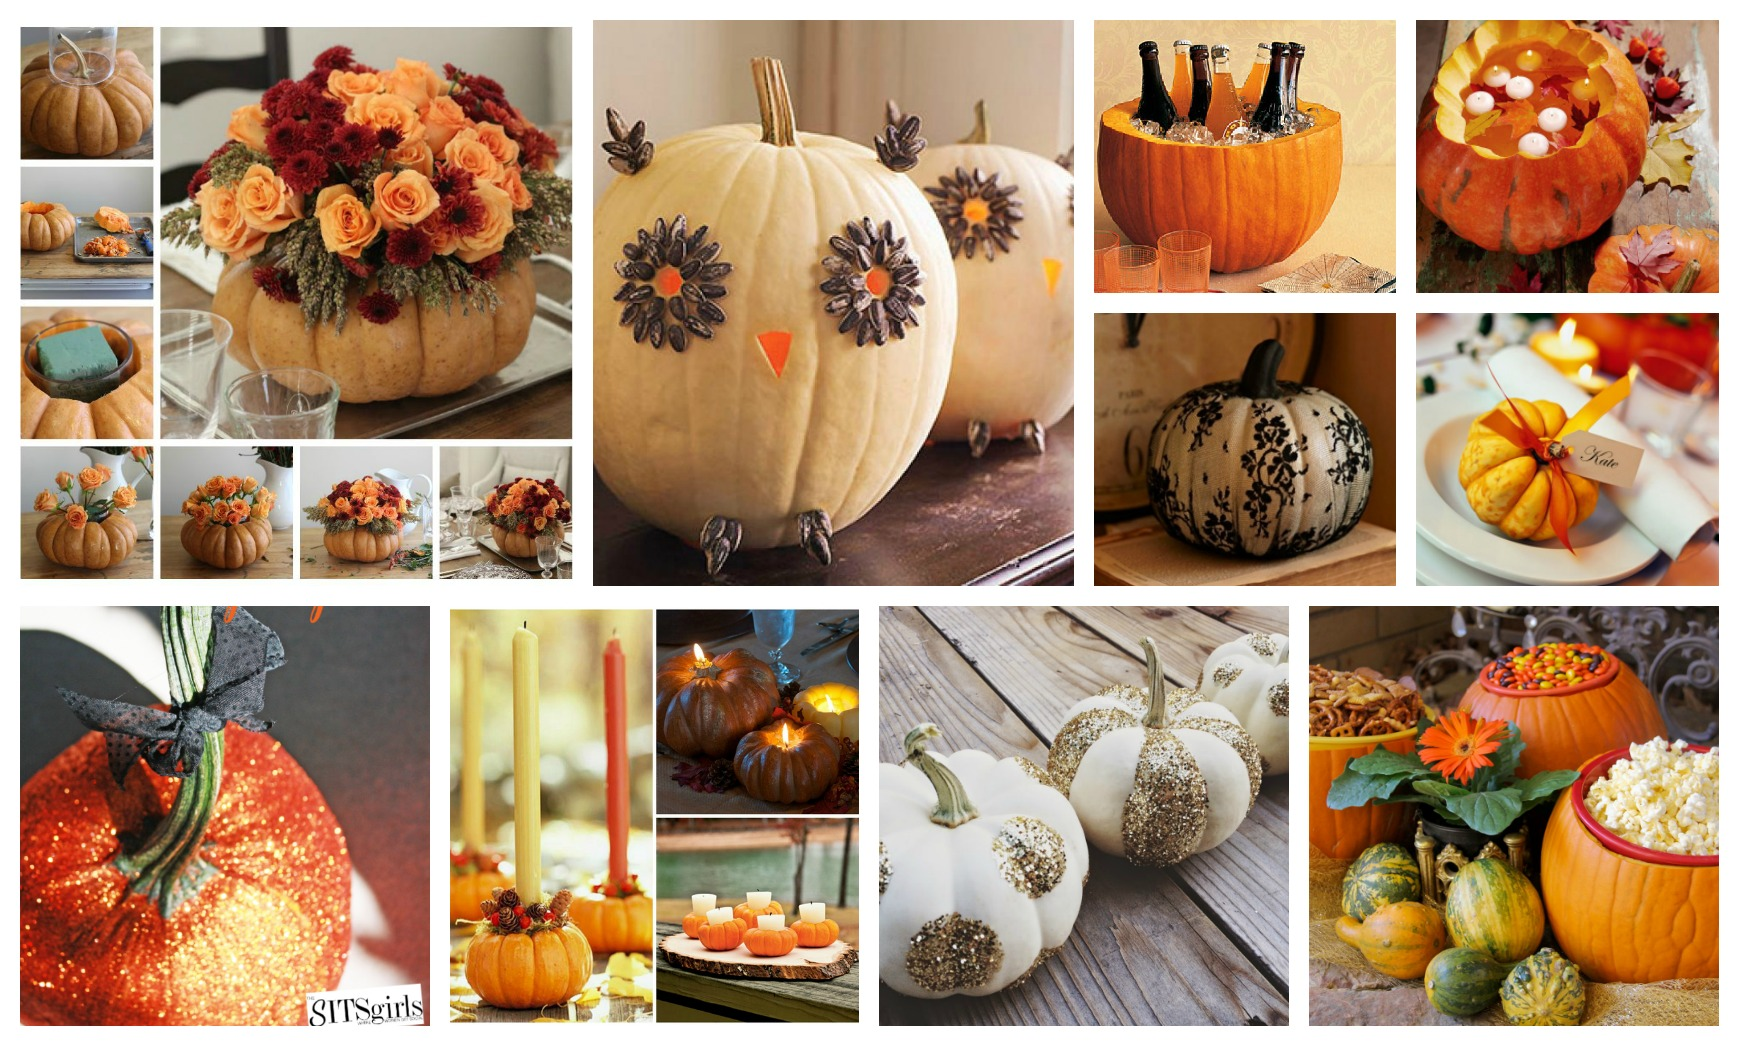 Cute DIY Pumpkin Decorations To Welcome The Fall